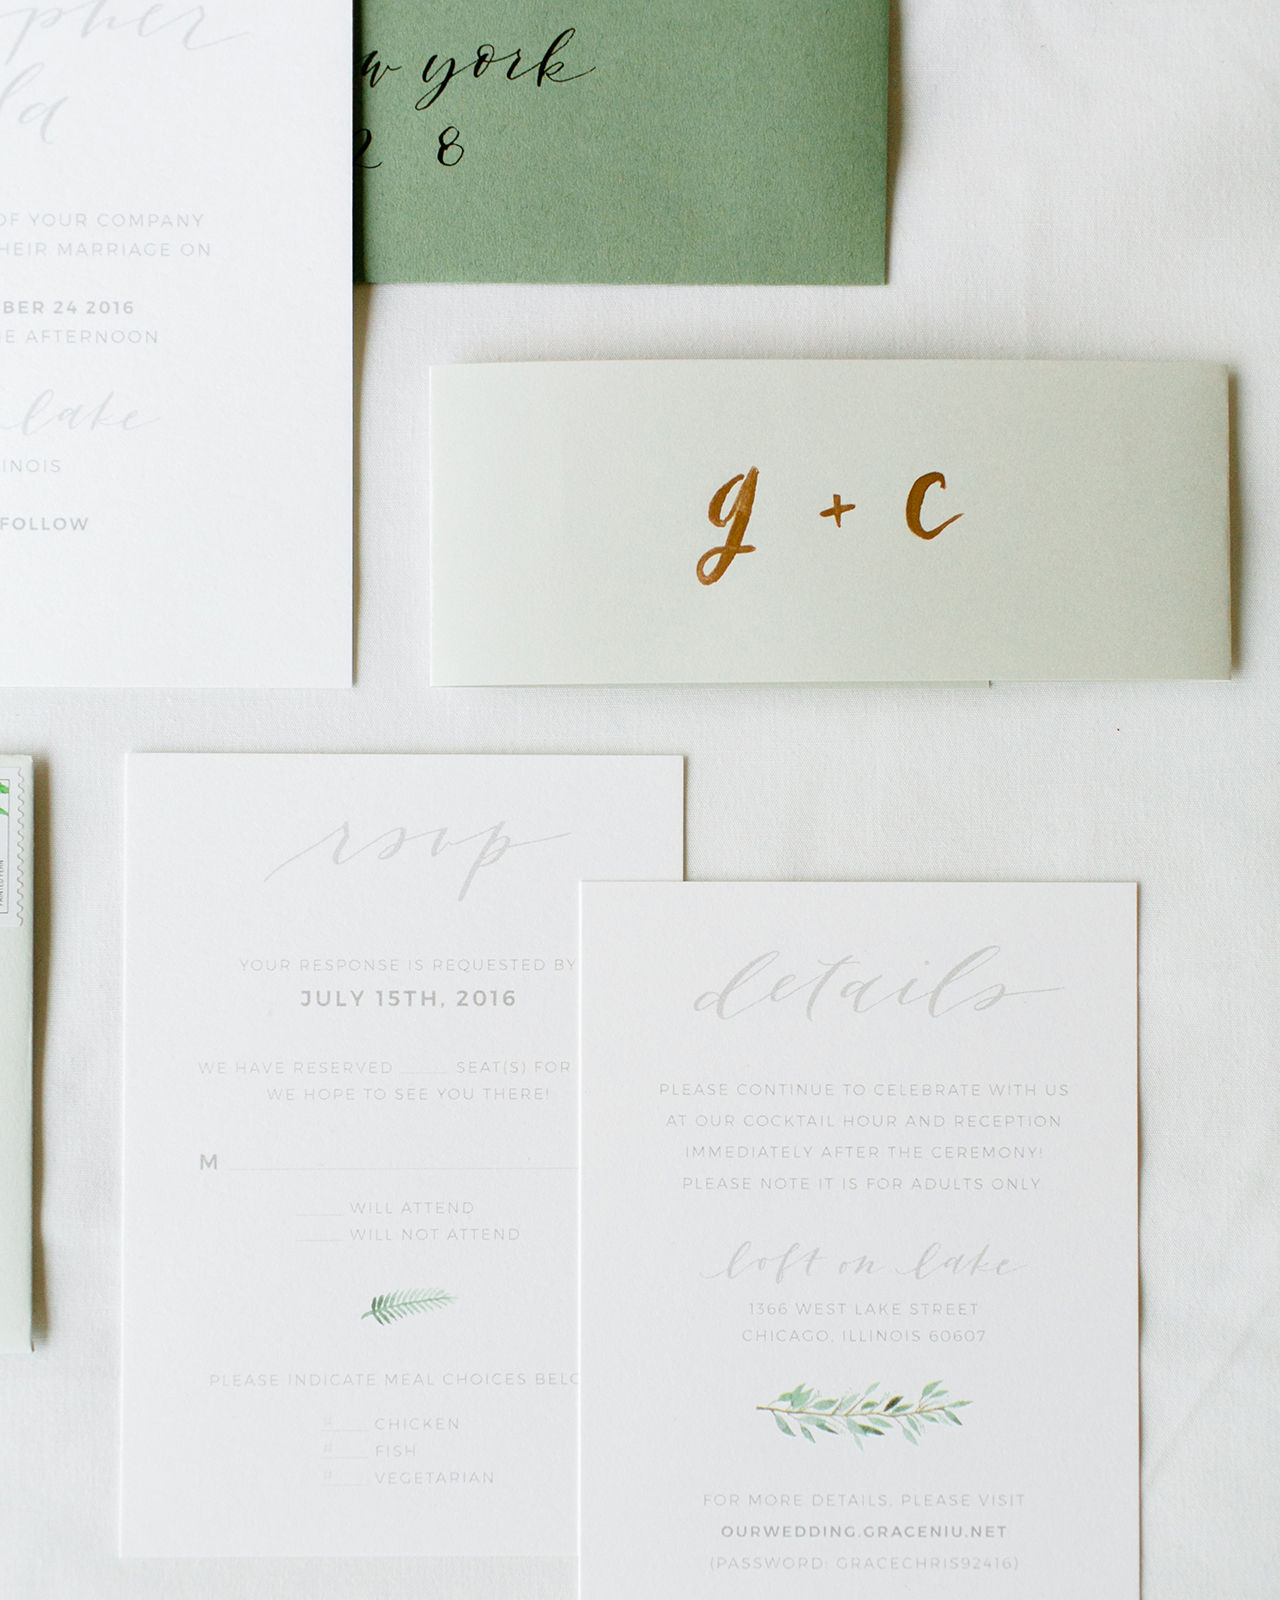 Wedding Calligraphy A Guide To Beautiful Hand Lettering Understated Green Calligraphy And Fern Wedding Invitations